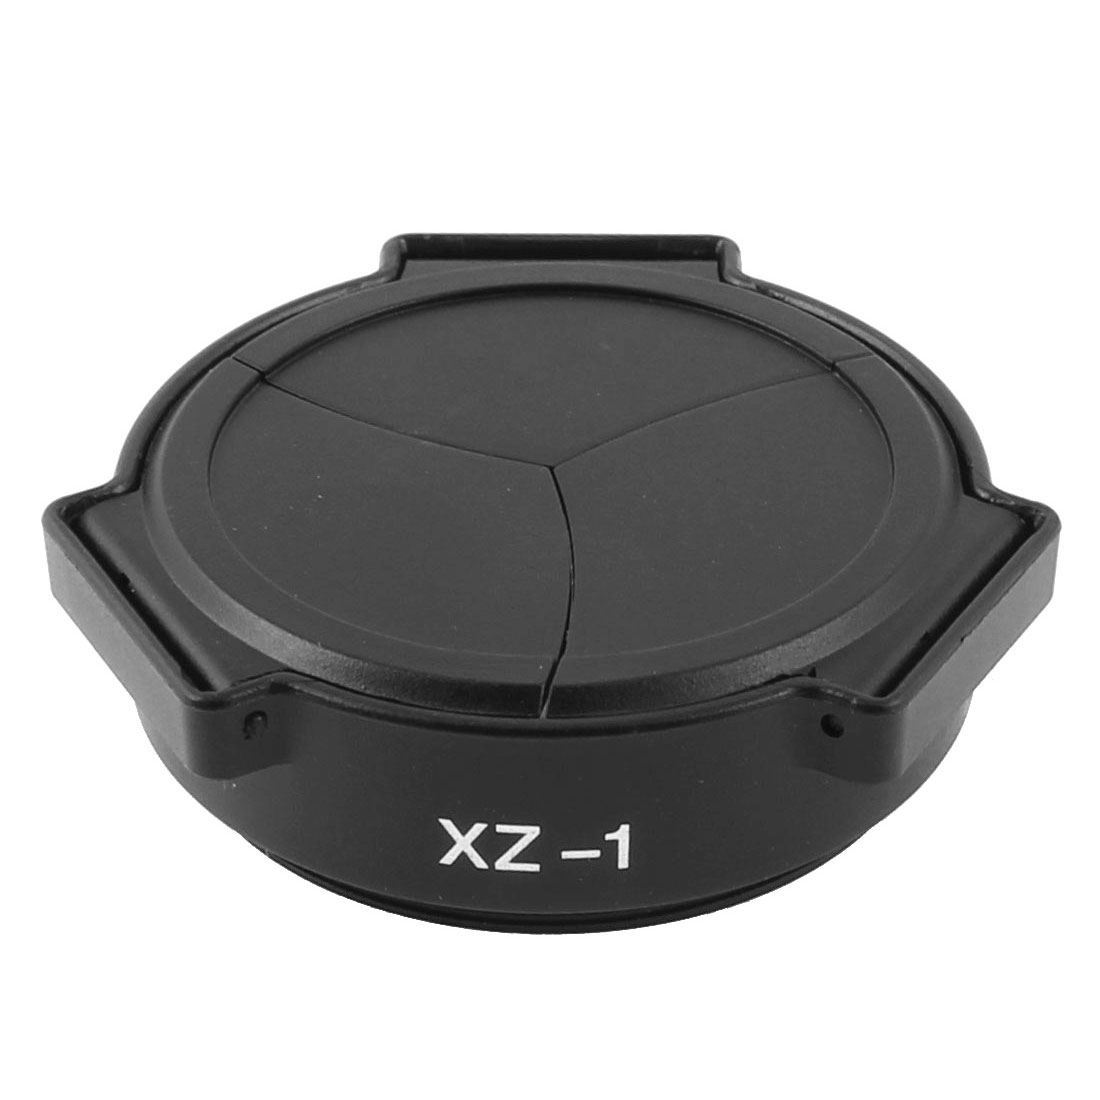 Camera Self-Retaining Auto Lens Cap Cover Black for Olympus XZ-1 XZ1 DC